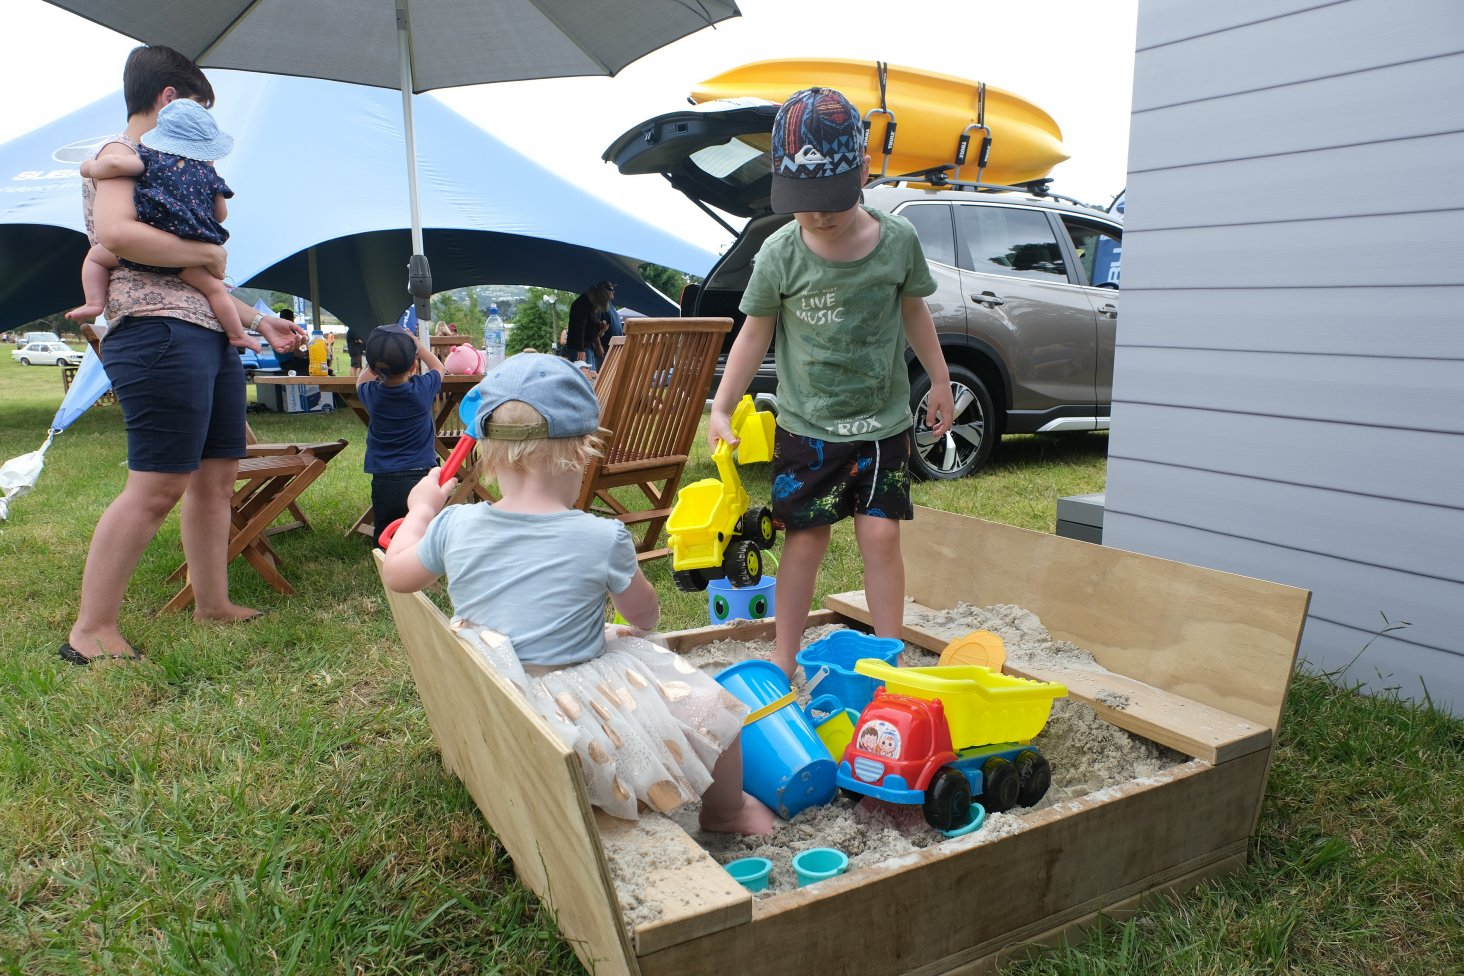 The new Subaru stand was child-friendly. PHOTO: GEOFF RIDDER.